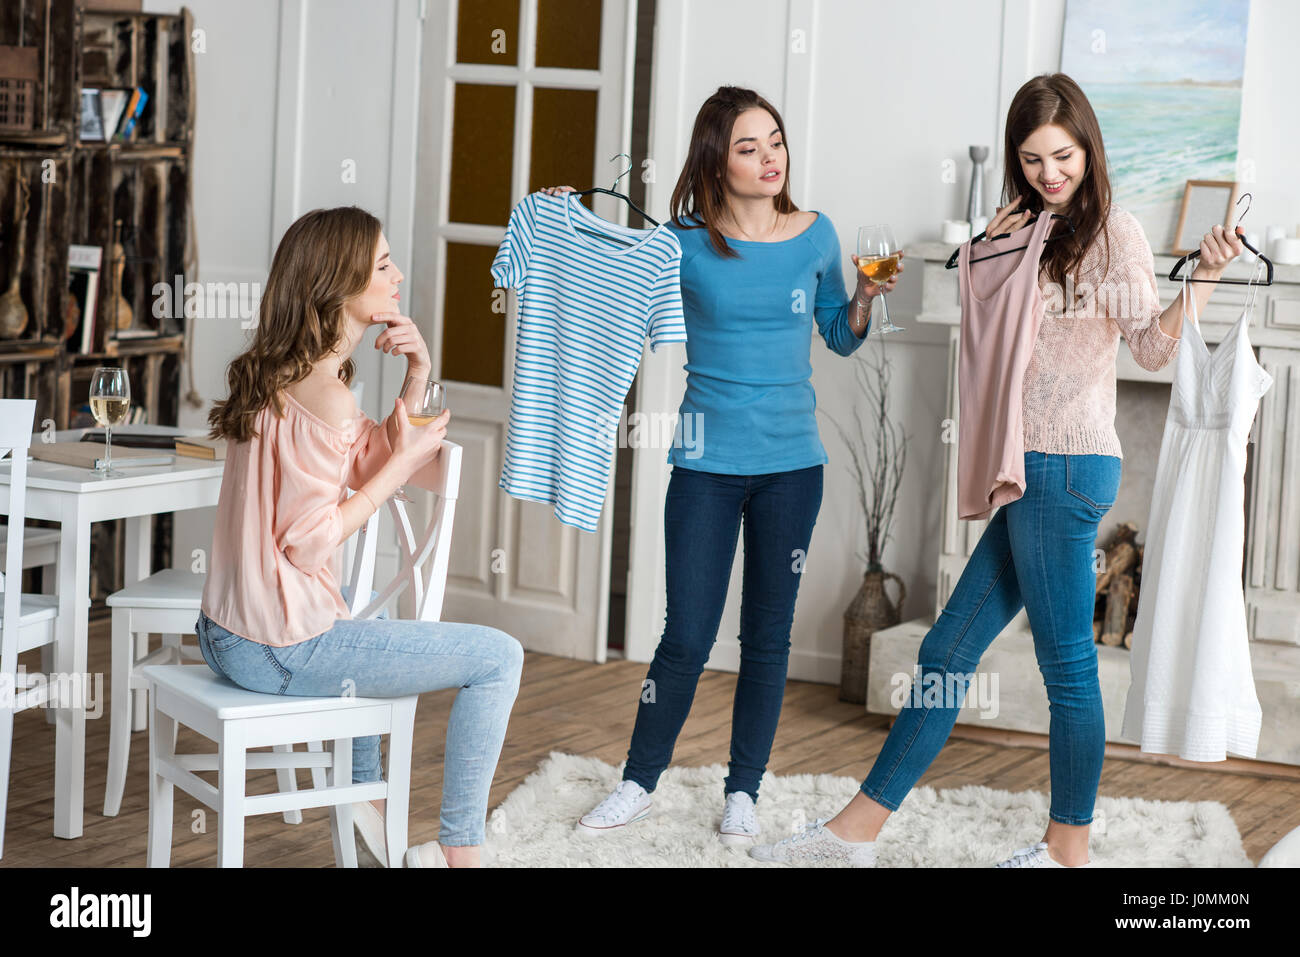 Stylish Clothes Three Young Attractive Women Choosing Stylish Clothes And Drinking